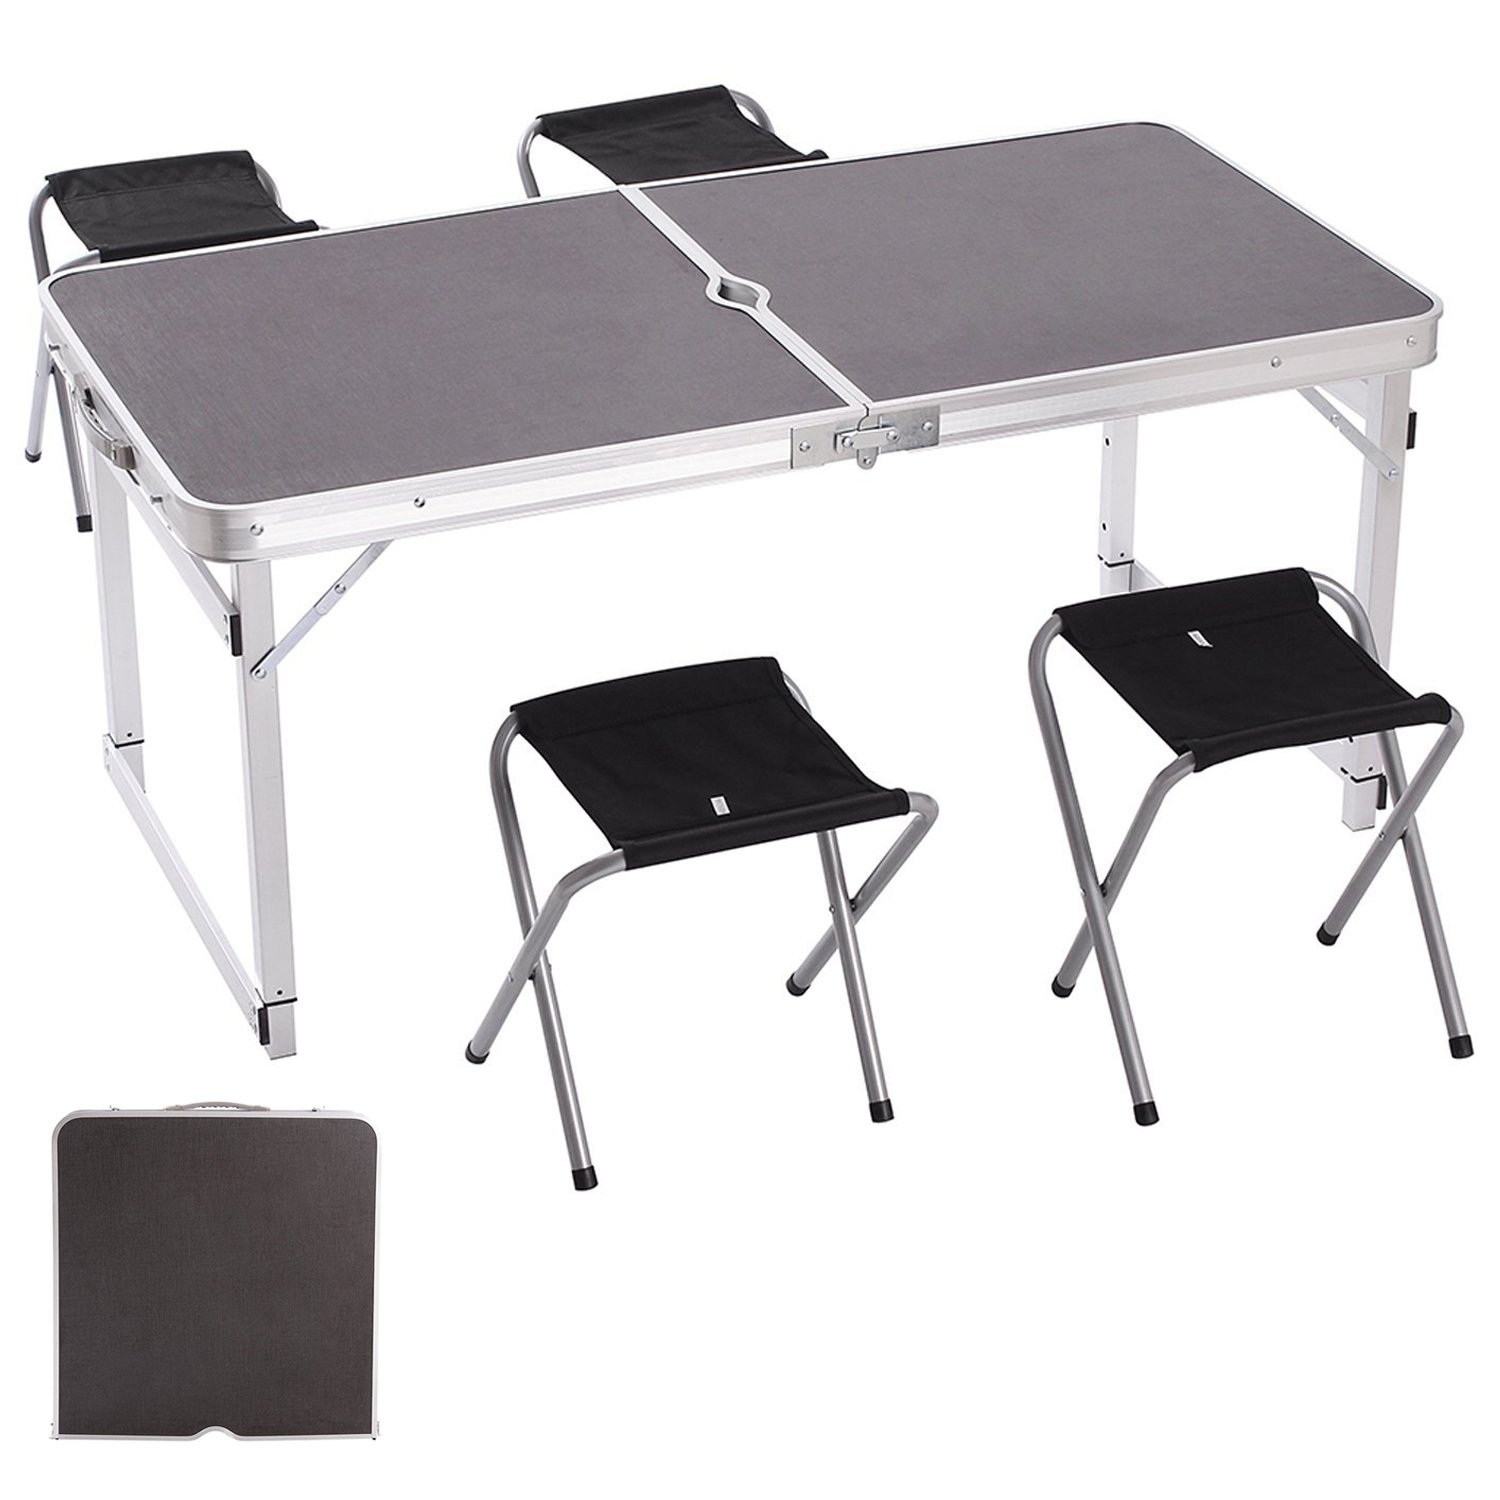 Camp Solutions Portable Folding Table Sturdy And Lightweight Aluminum Legs with 4 Folding Chairs, 3 Adjustable Heights feet, for Indoor/Outdoor Use, Camping Picnic, Party Dining, Black